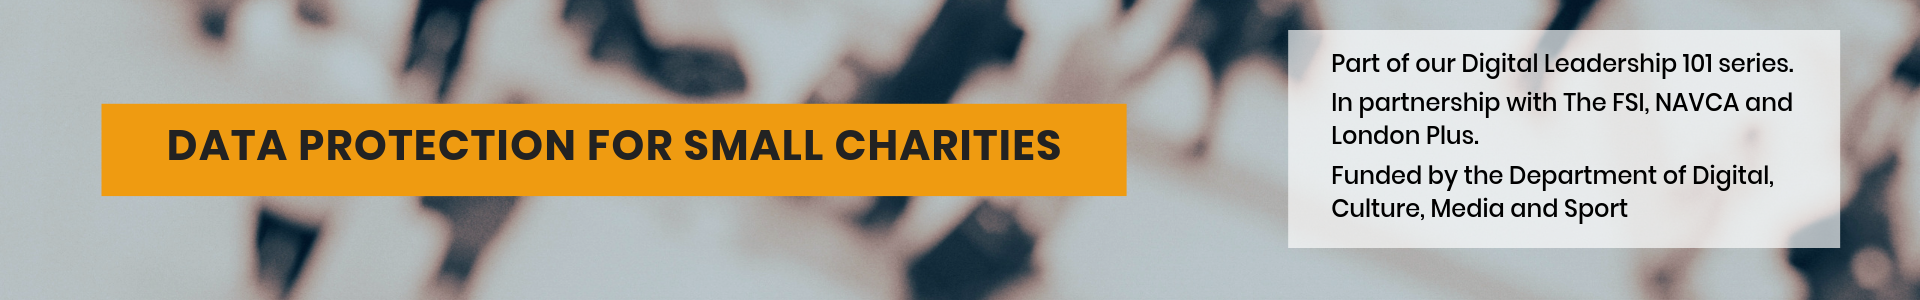 Data Protection for small charities blog header, text on image of crowd of people